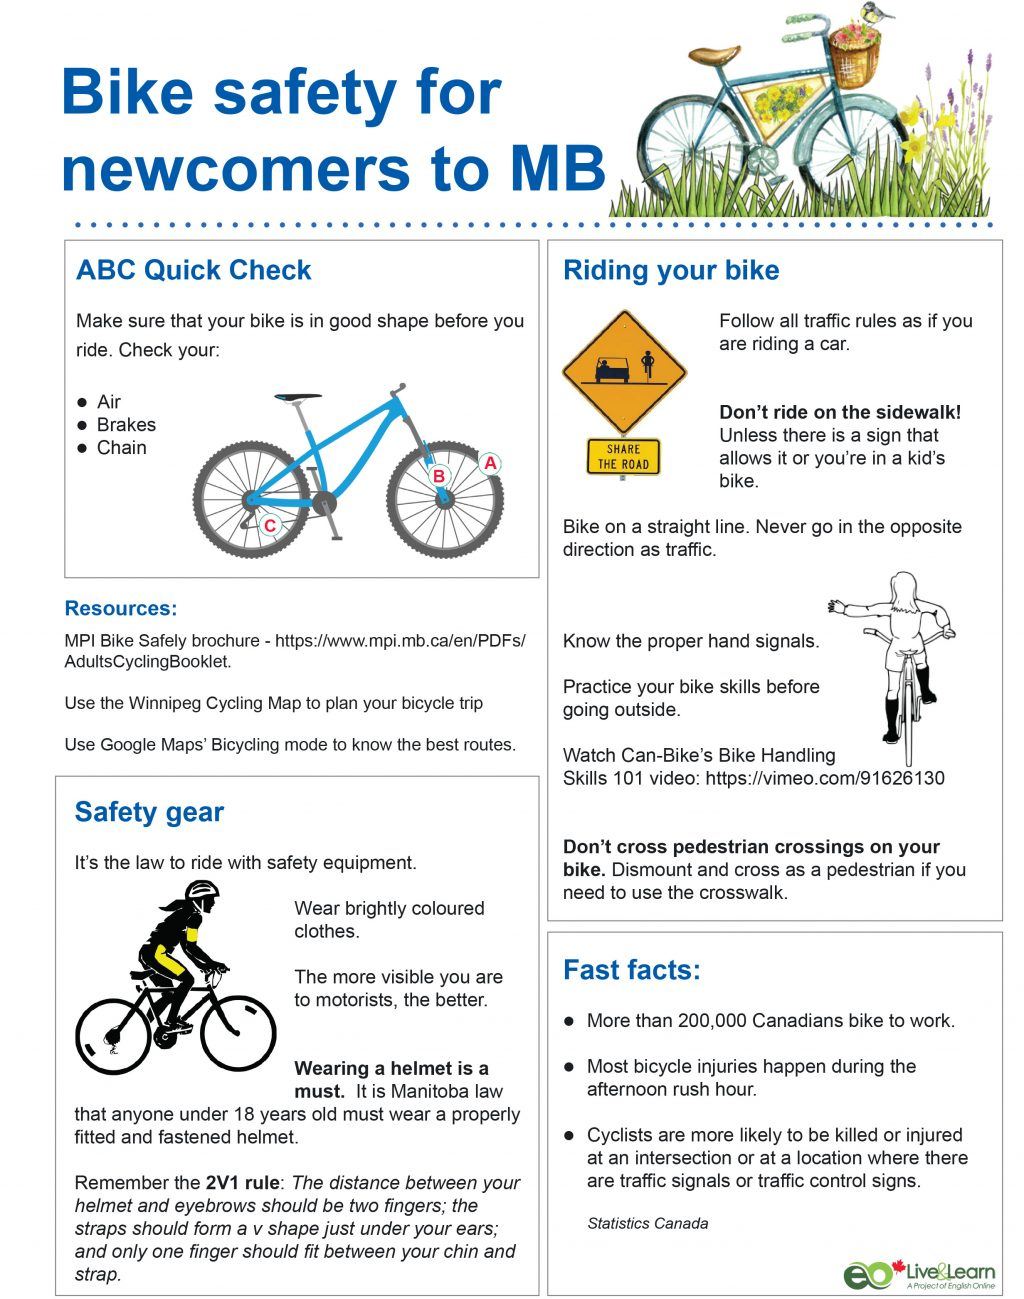 Bike safety for newcomers poster